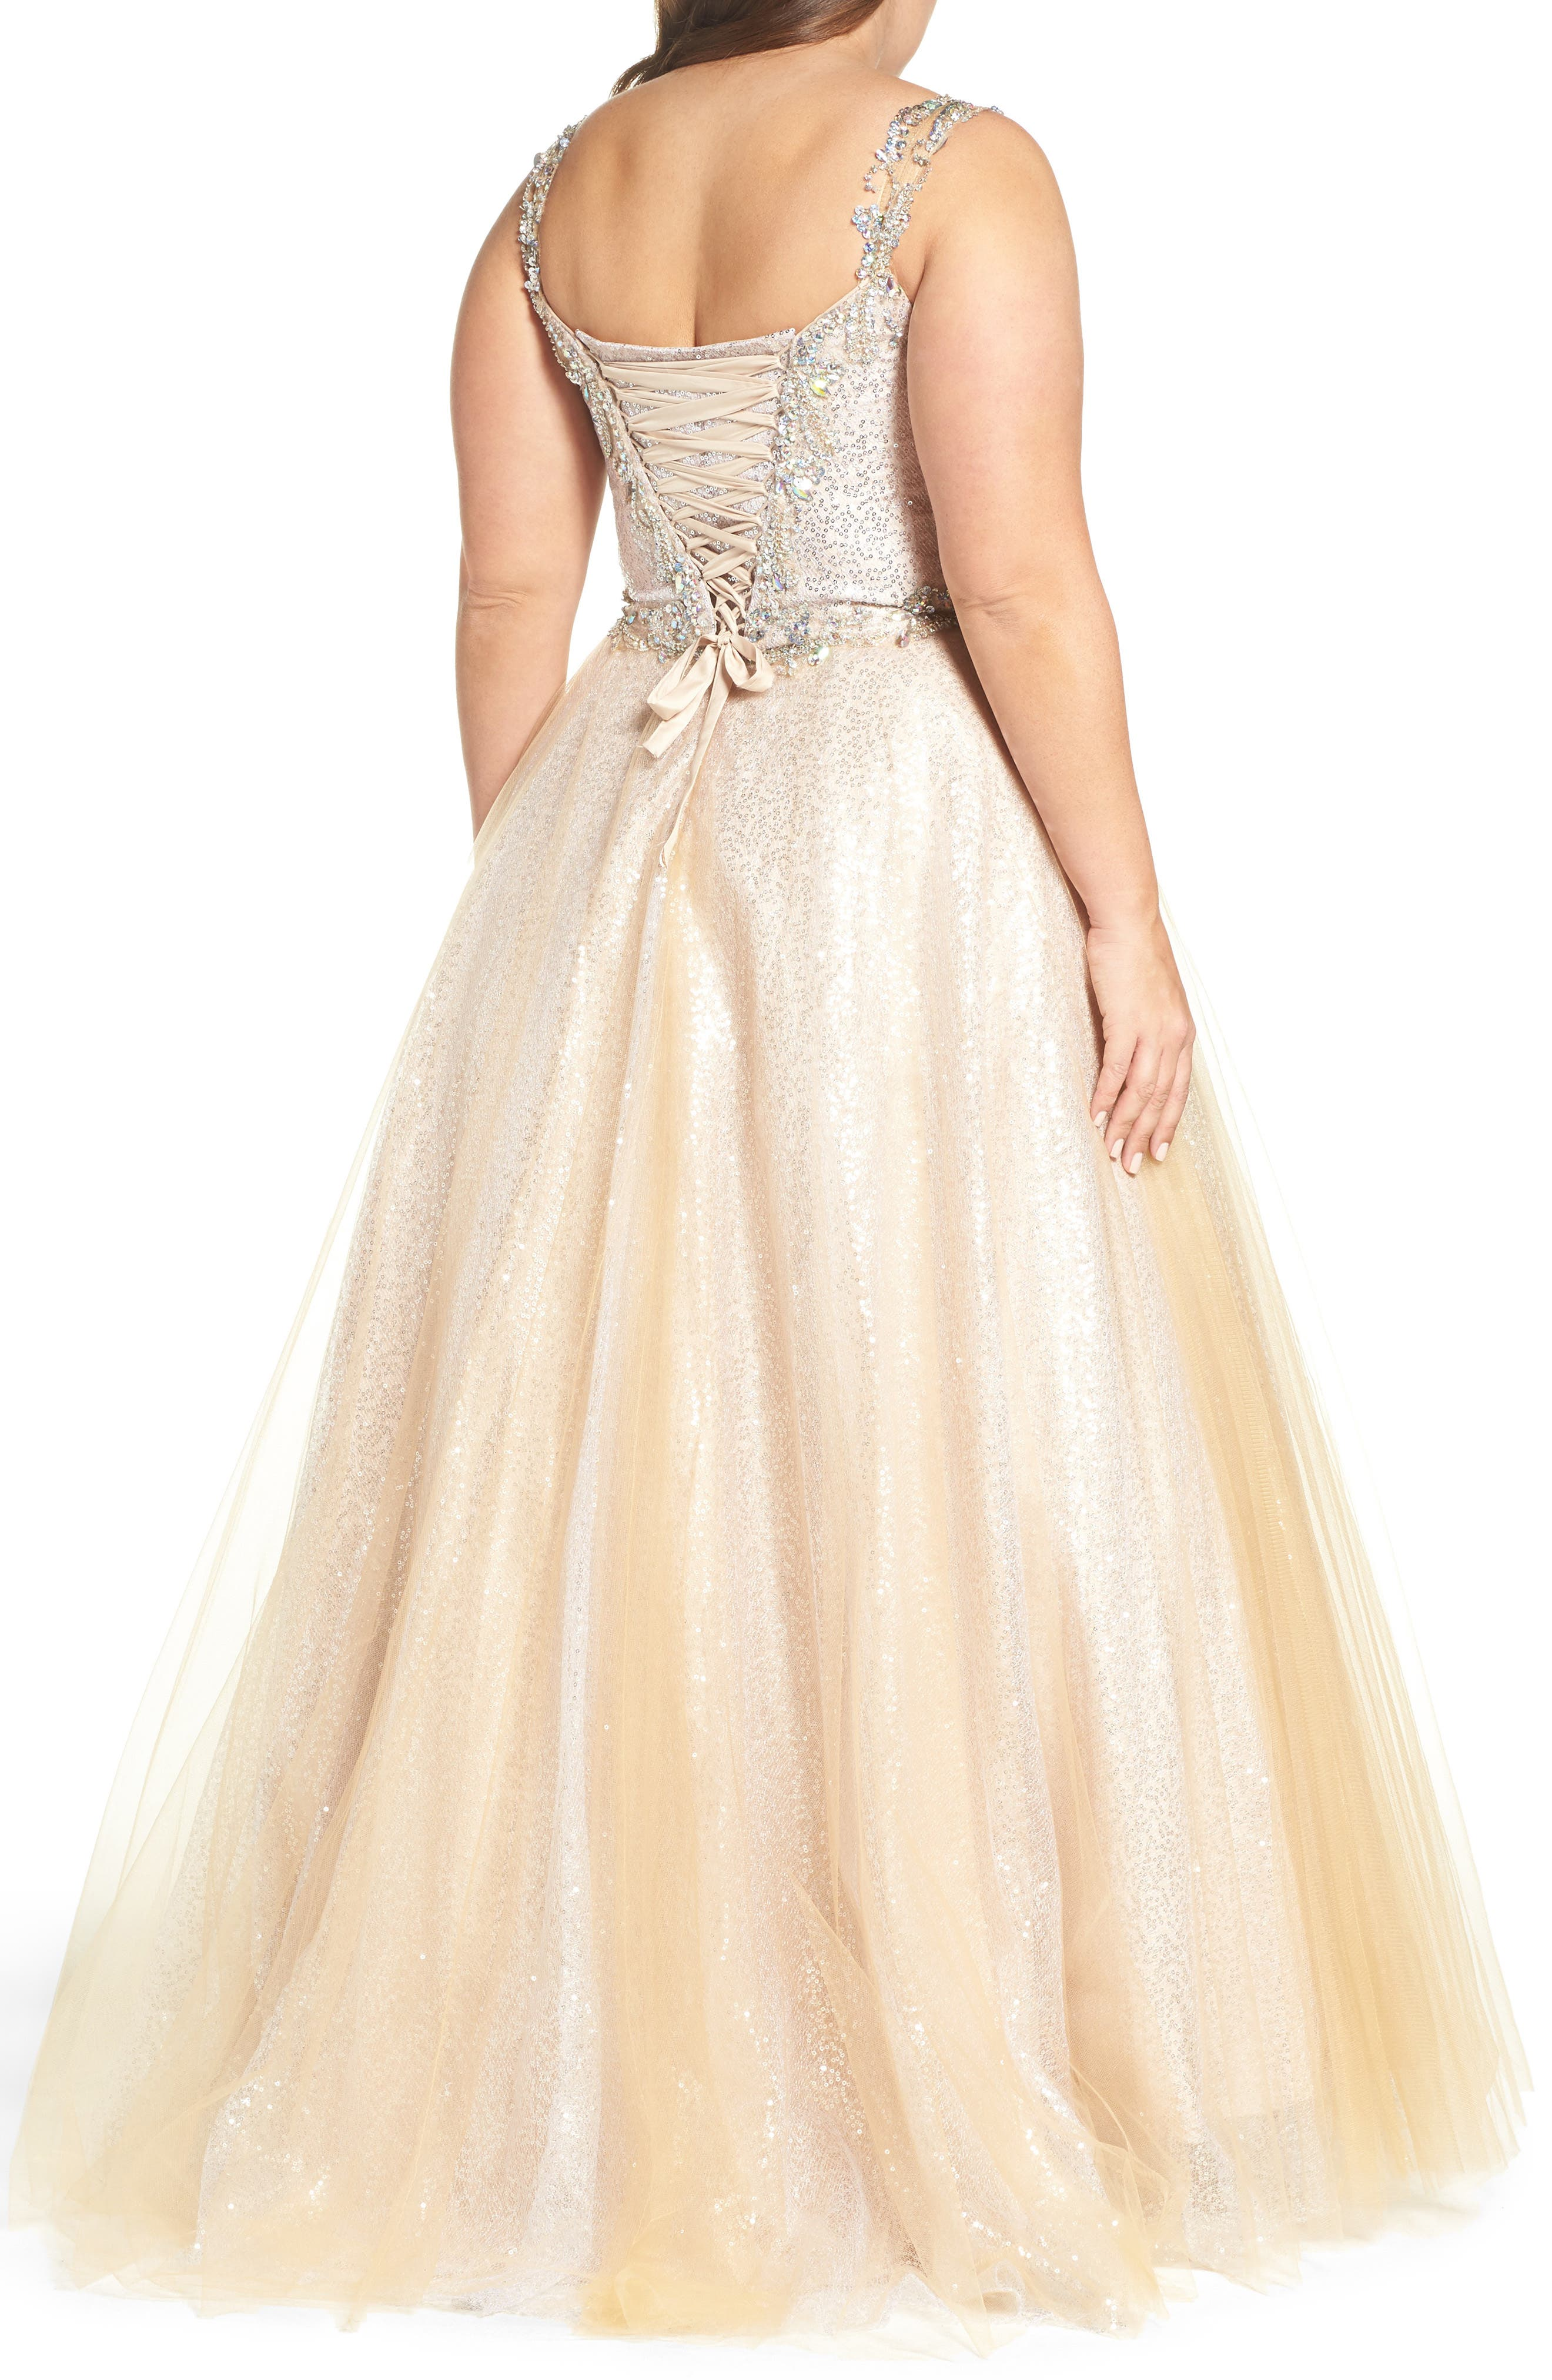 Beaded Tulle Ballgown,                             Alternate thumbnail 2, color,                             270